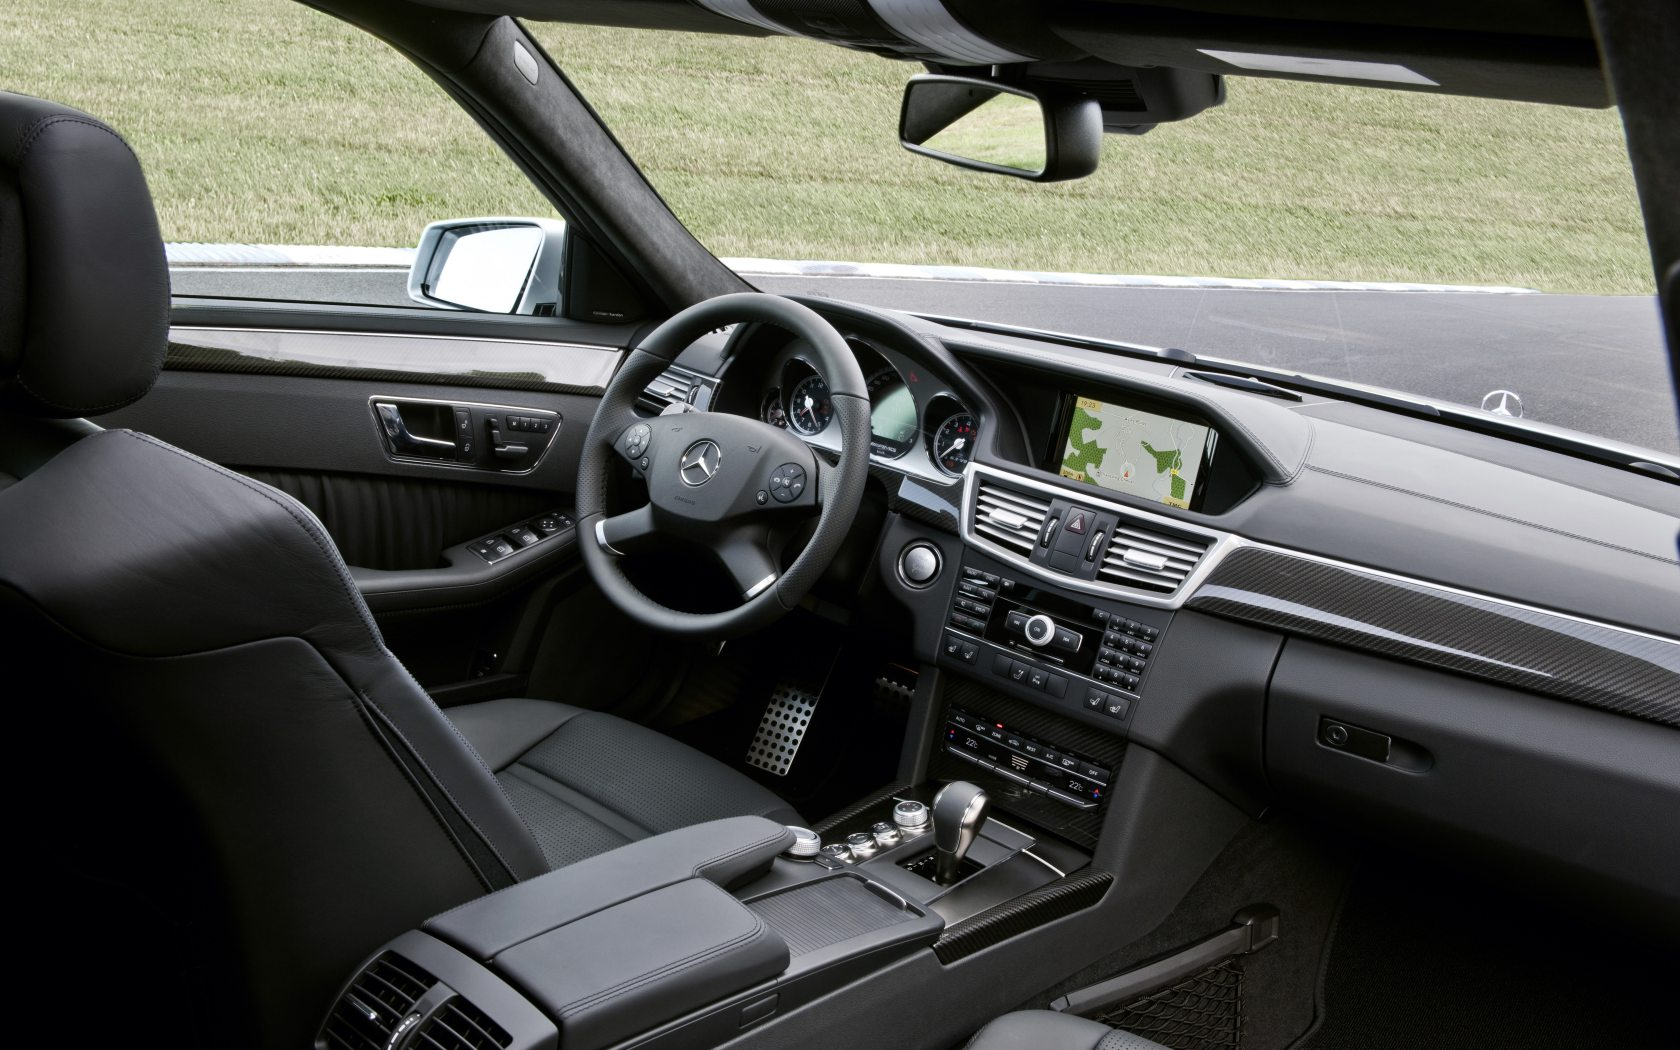 E-Klasse T-Modell E 63 AMG Interieur - Mercedes-Benz Wallpaper - MB ...